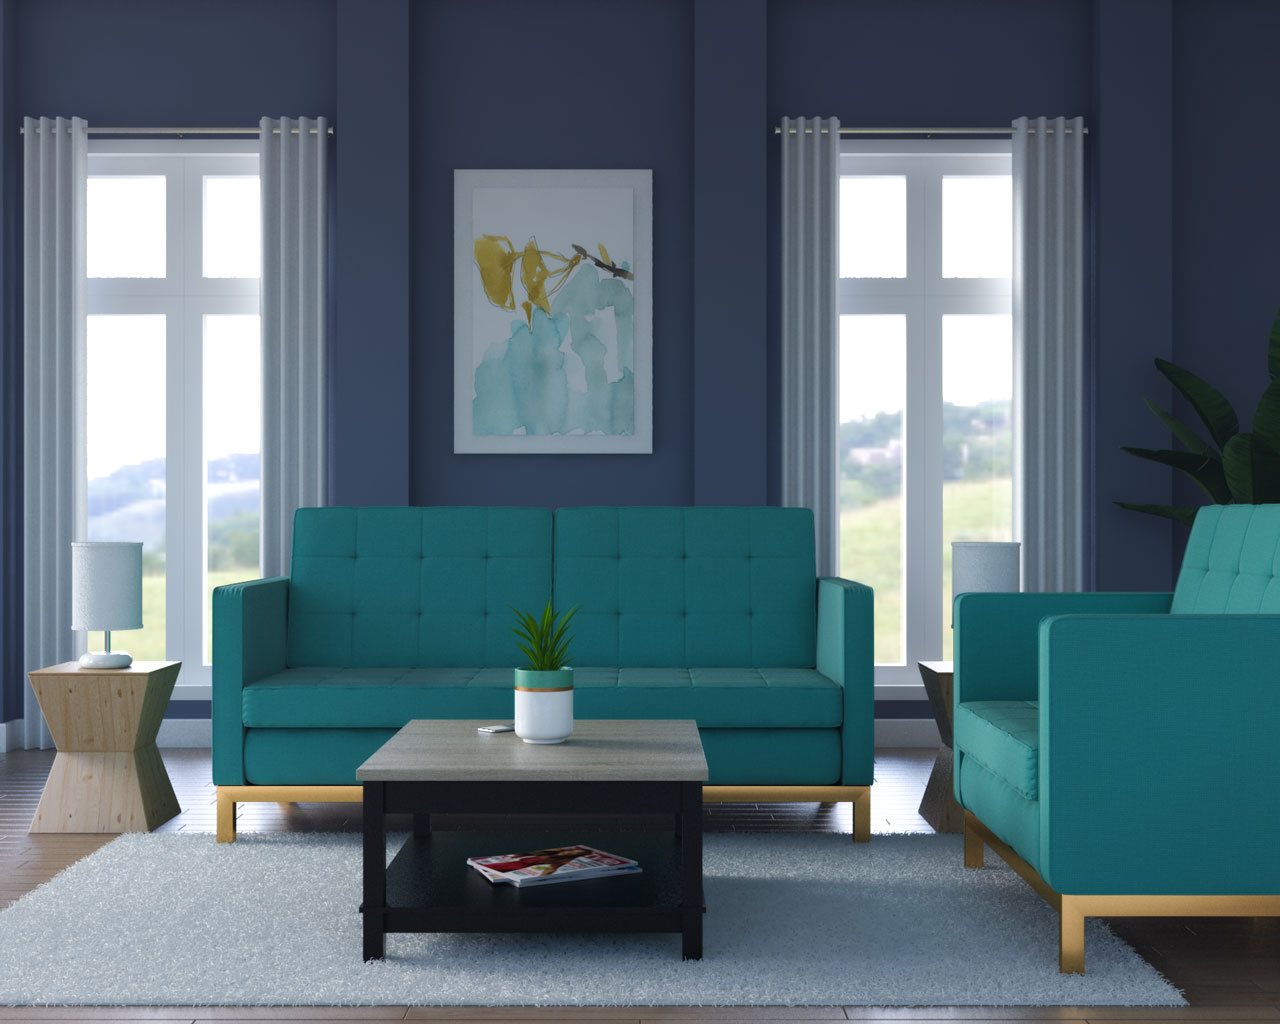 Grayish blue wall with teal couch